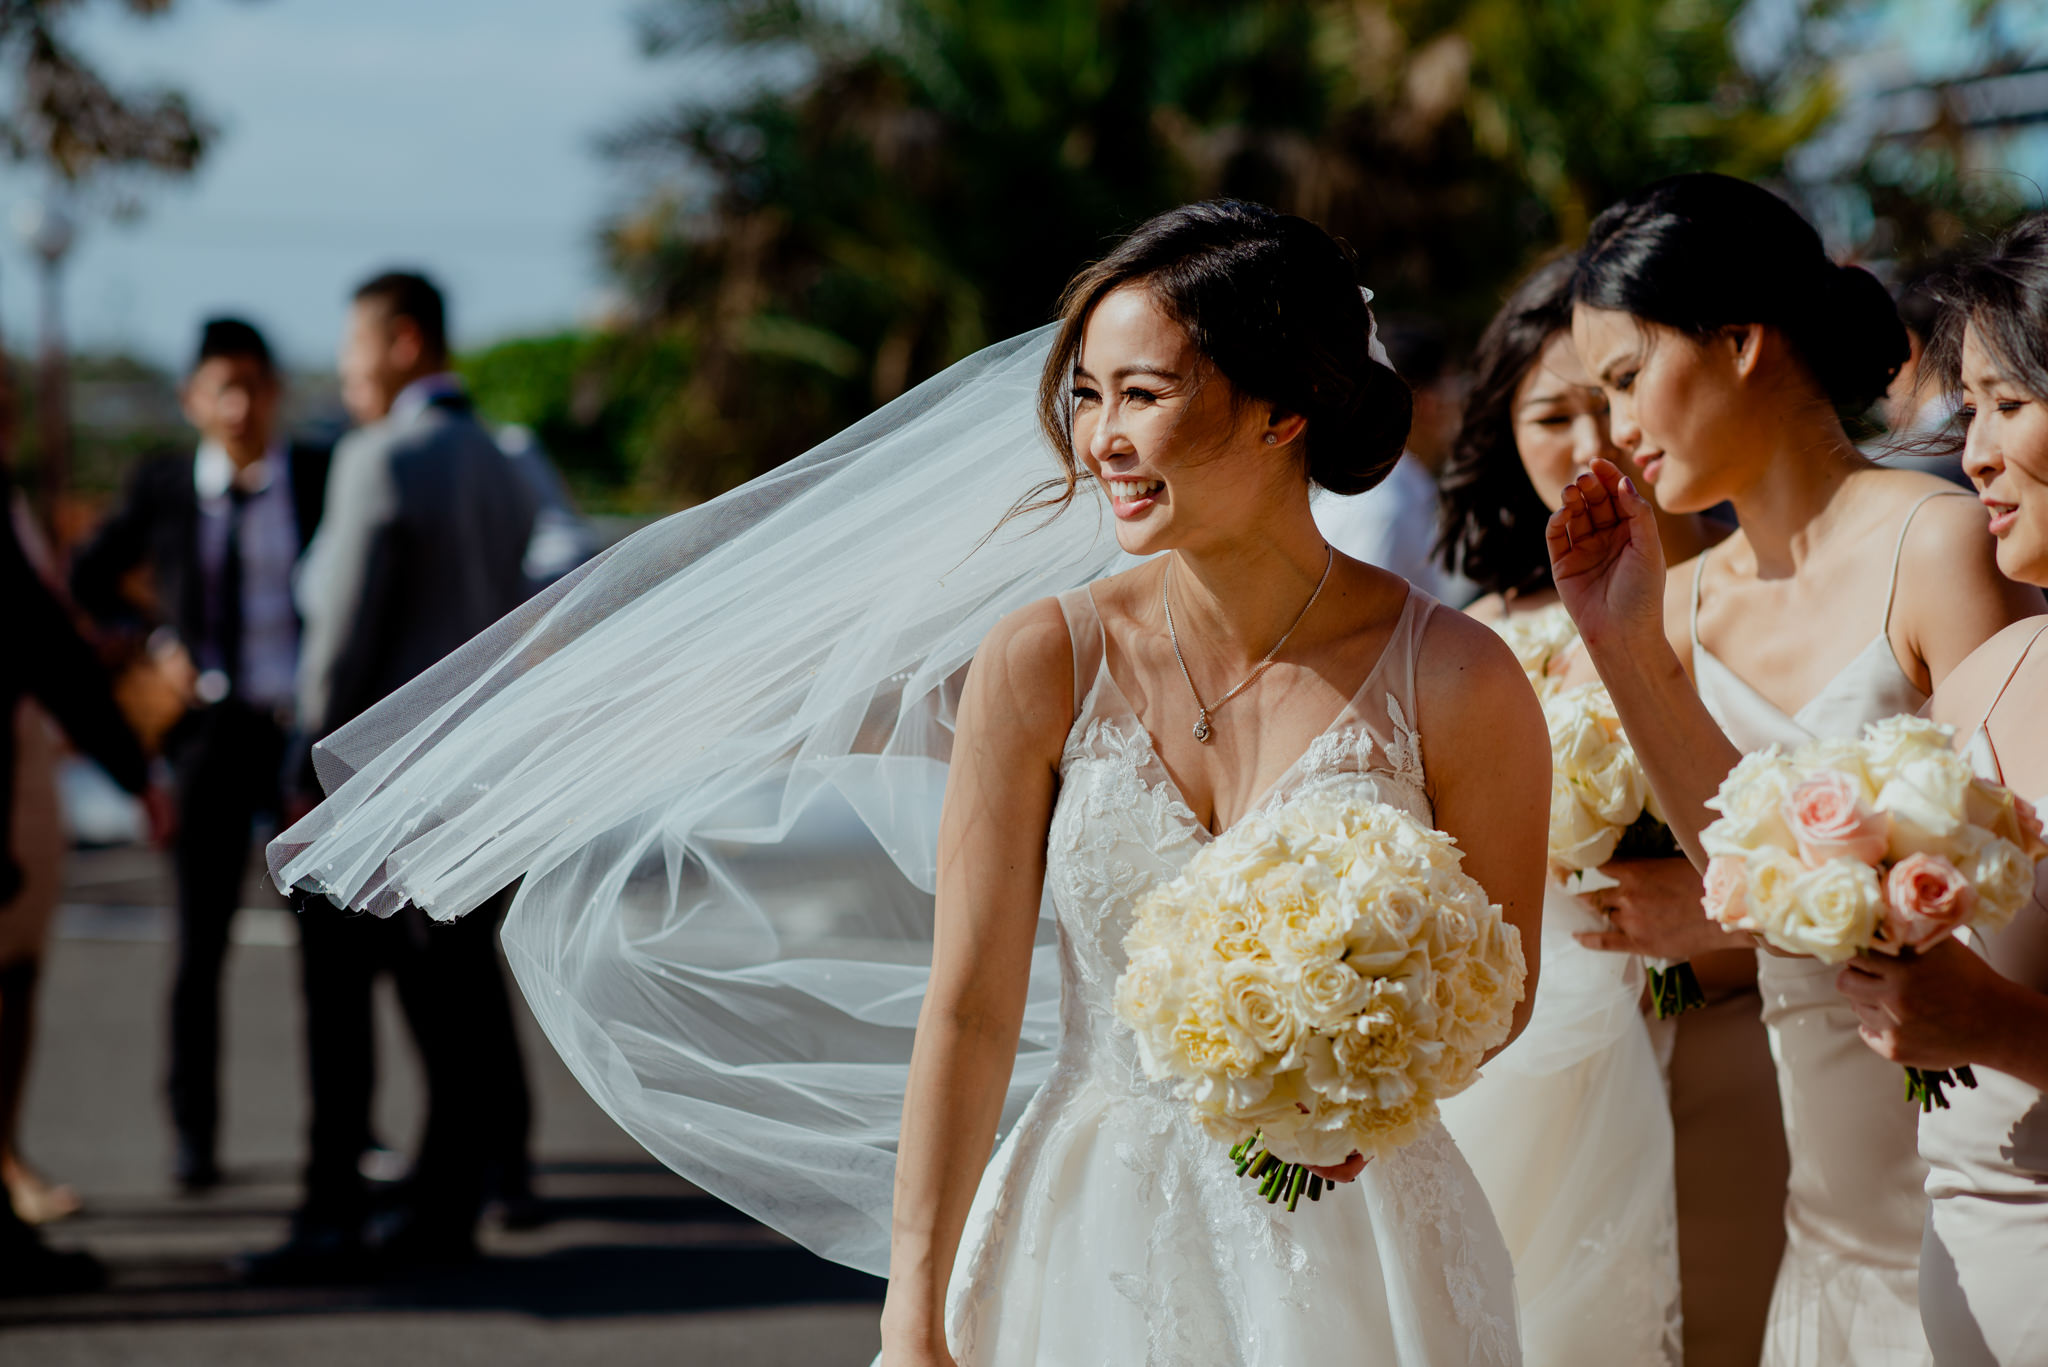 An Asian bride smiles and laughs as her wedding veil flows in the wind